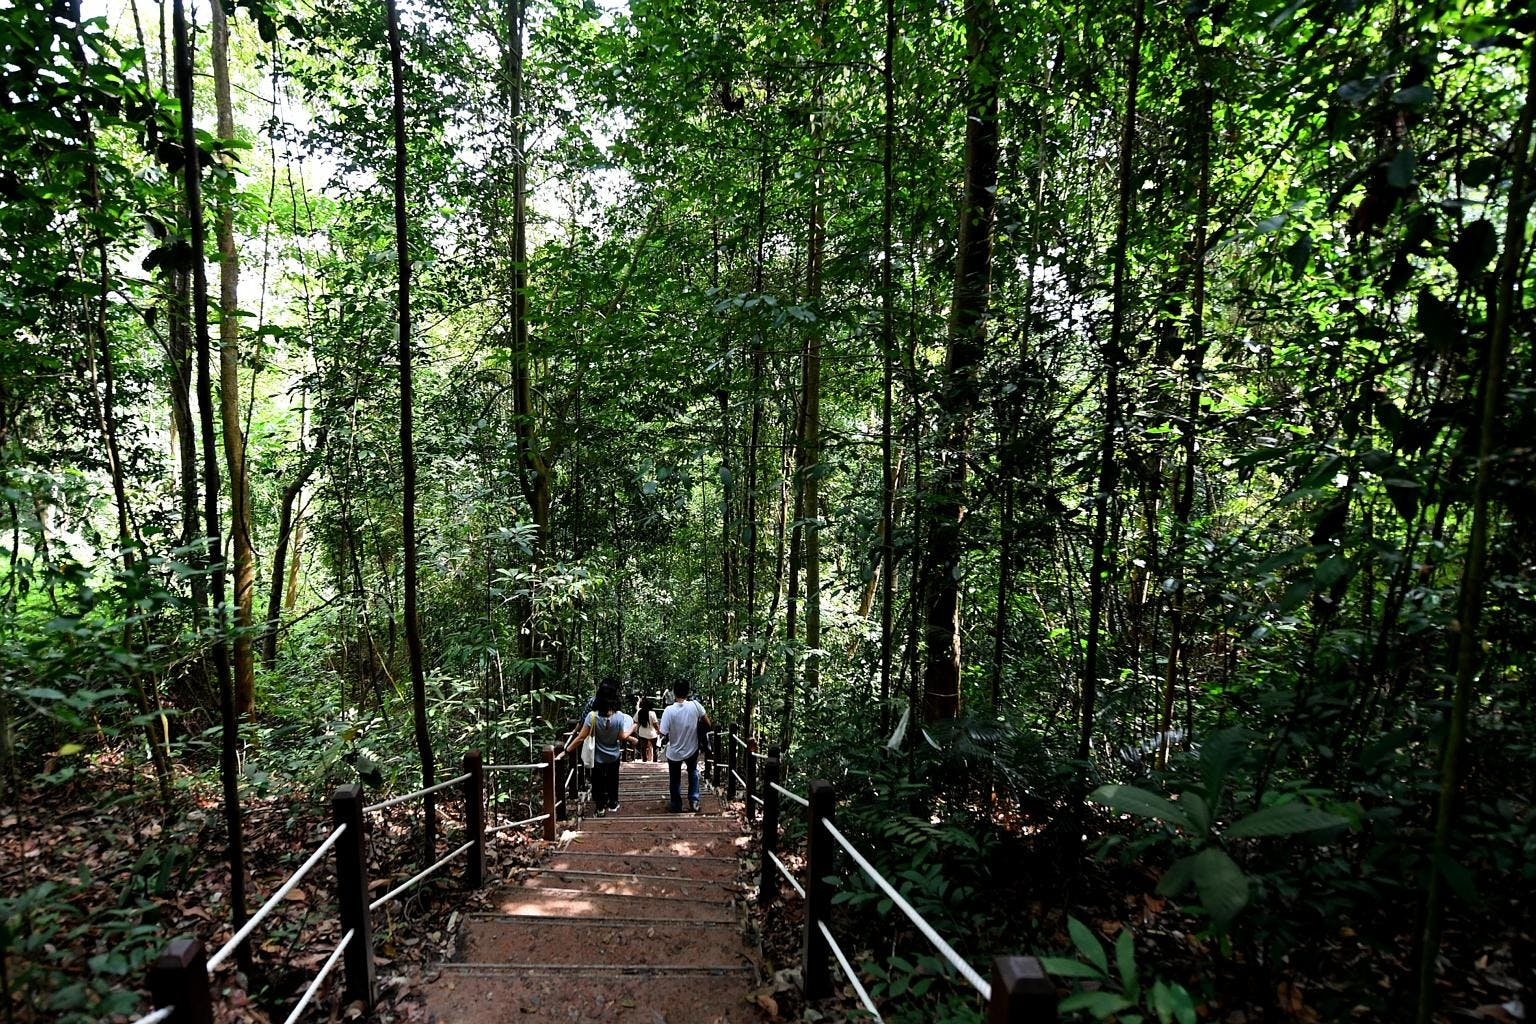 Stop by Bukit Timah Nature Reserve for a relaxing hike